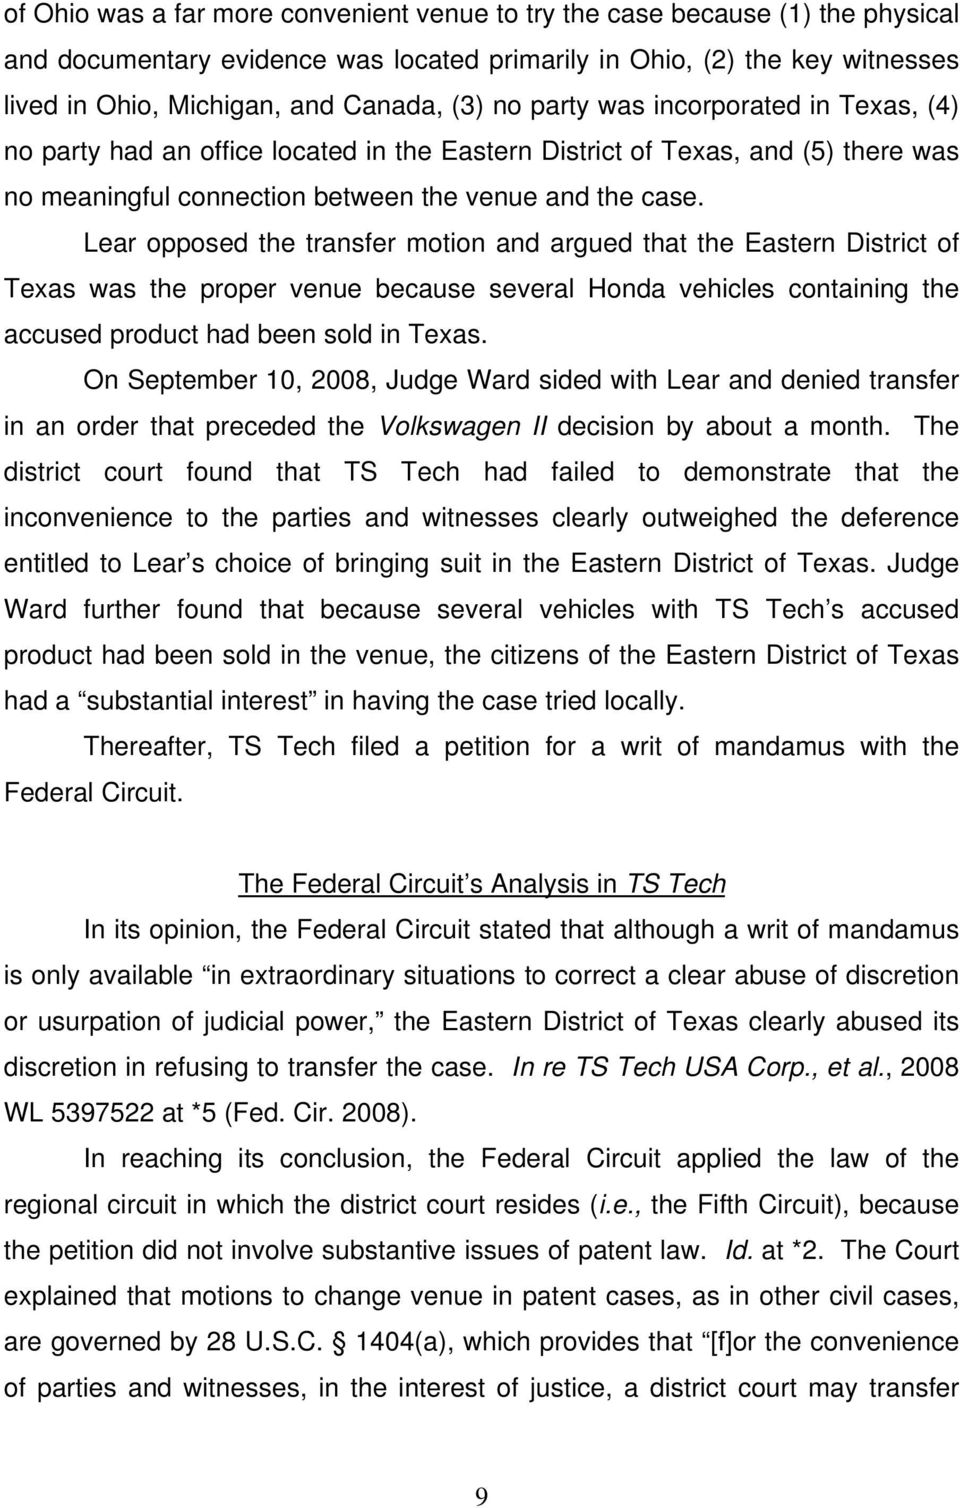 Lear opposed the transfer motion and argued that the Eastern District of Texas was the proper venue because several Honda vehicles containing the accused product had been sold in Texas.